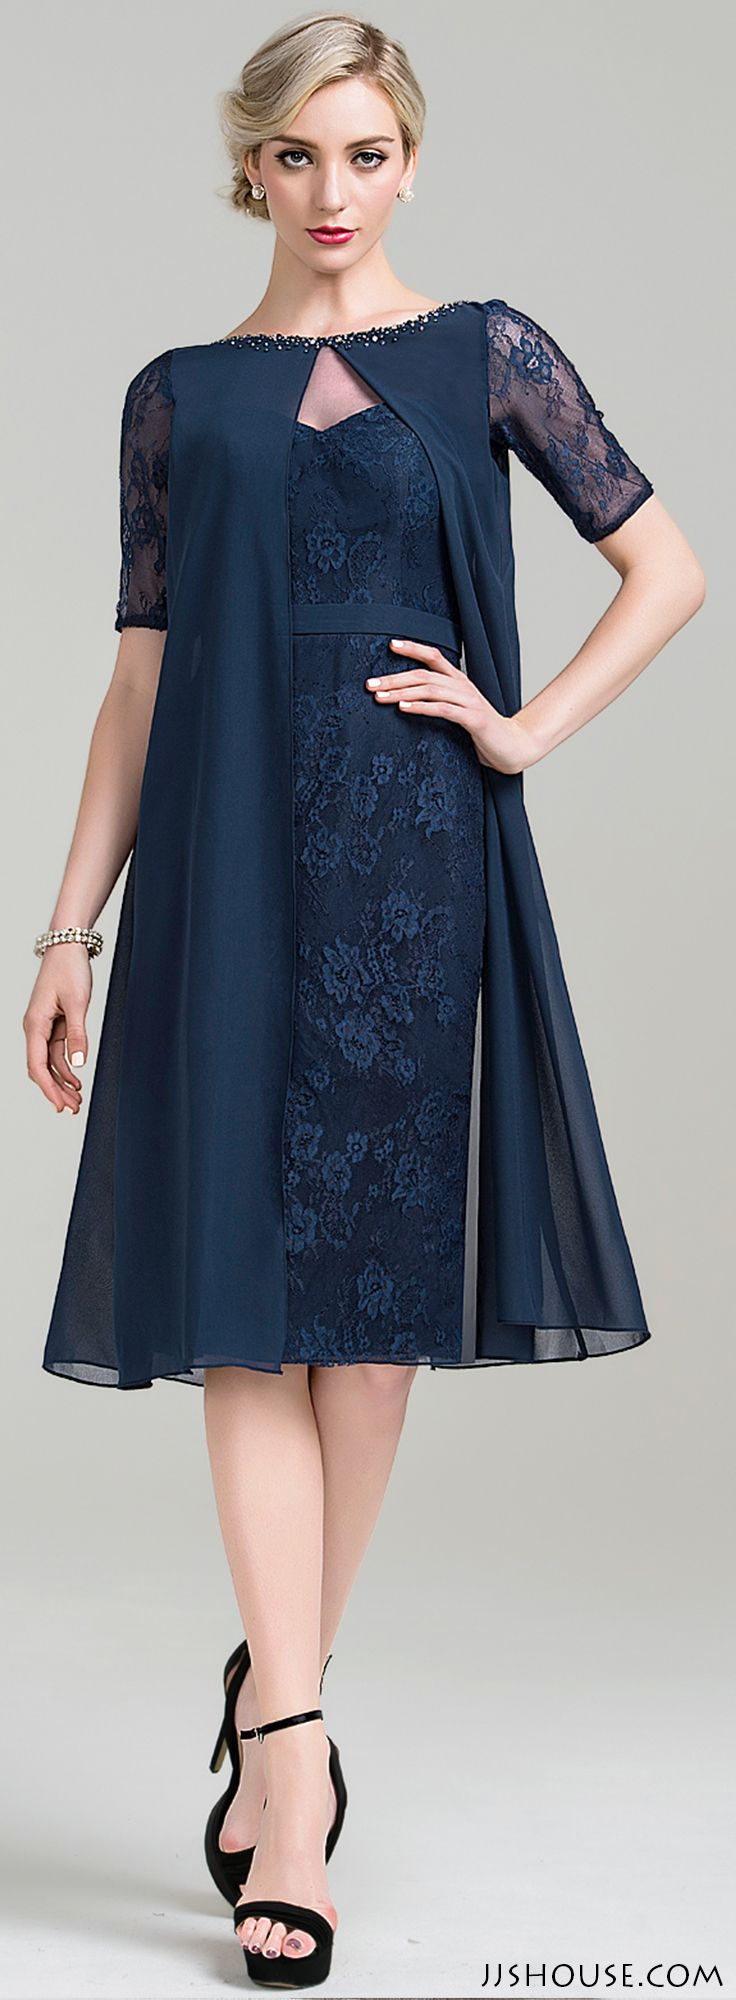 Sheath/Column Scoop Neck Knee-Length Chiffon Lace Mother of the Bride Dress With…